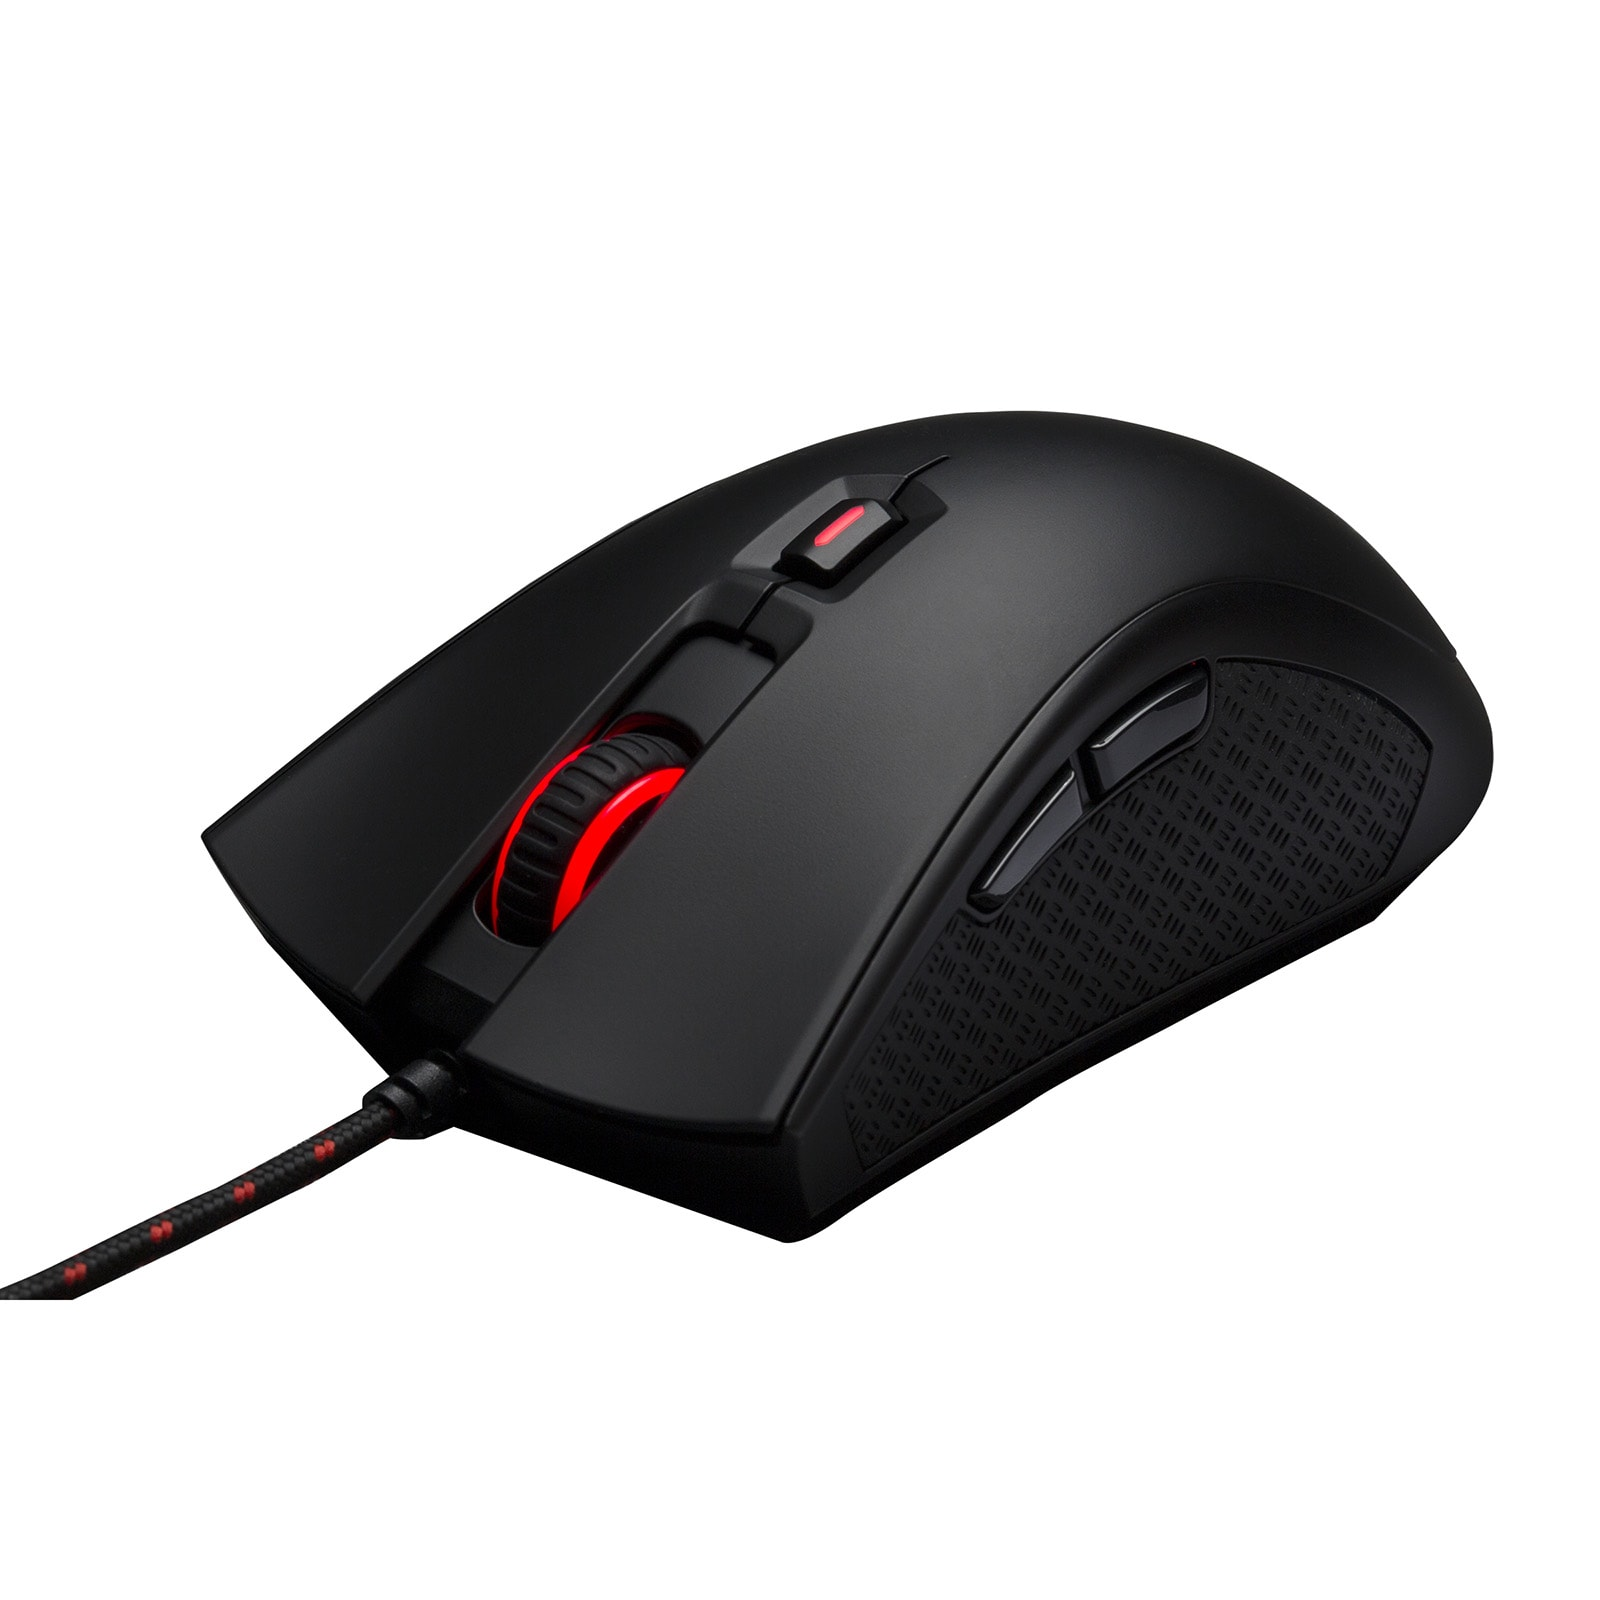 HyperX PULSEFIRE FPS Gaming Mouse - Souris PC HyperX - Cybertek.fr - 0